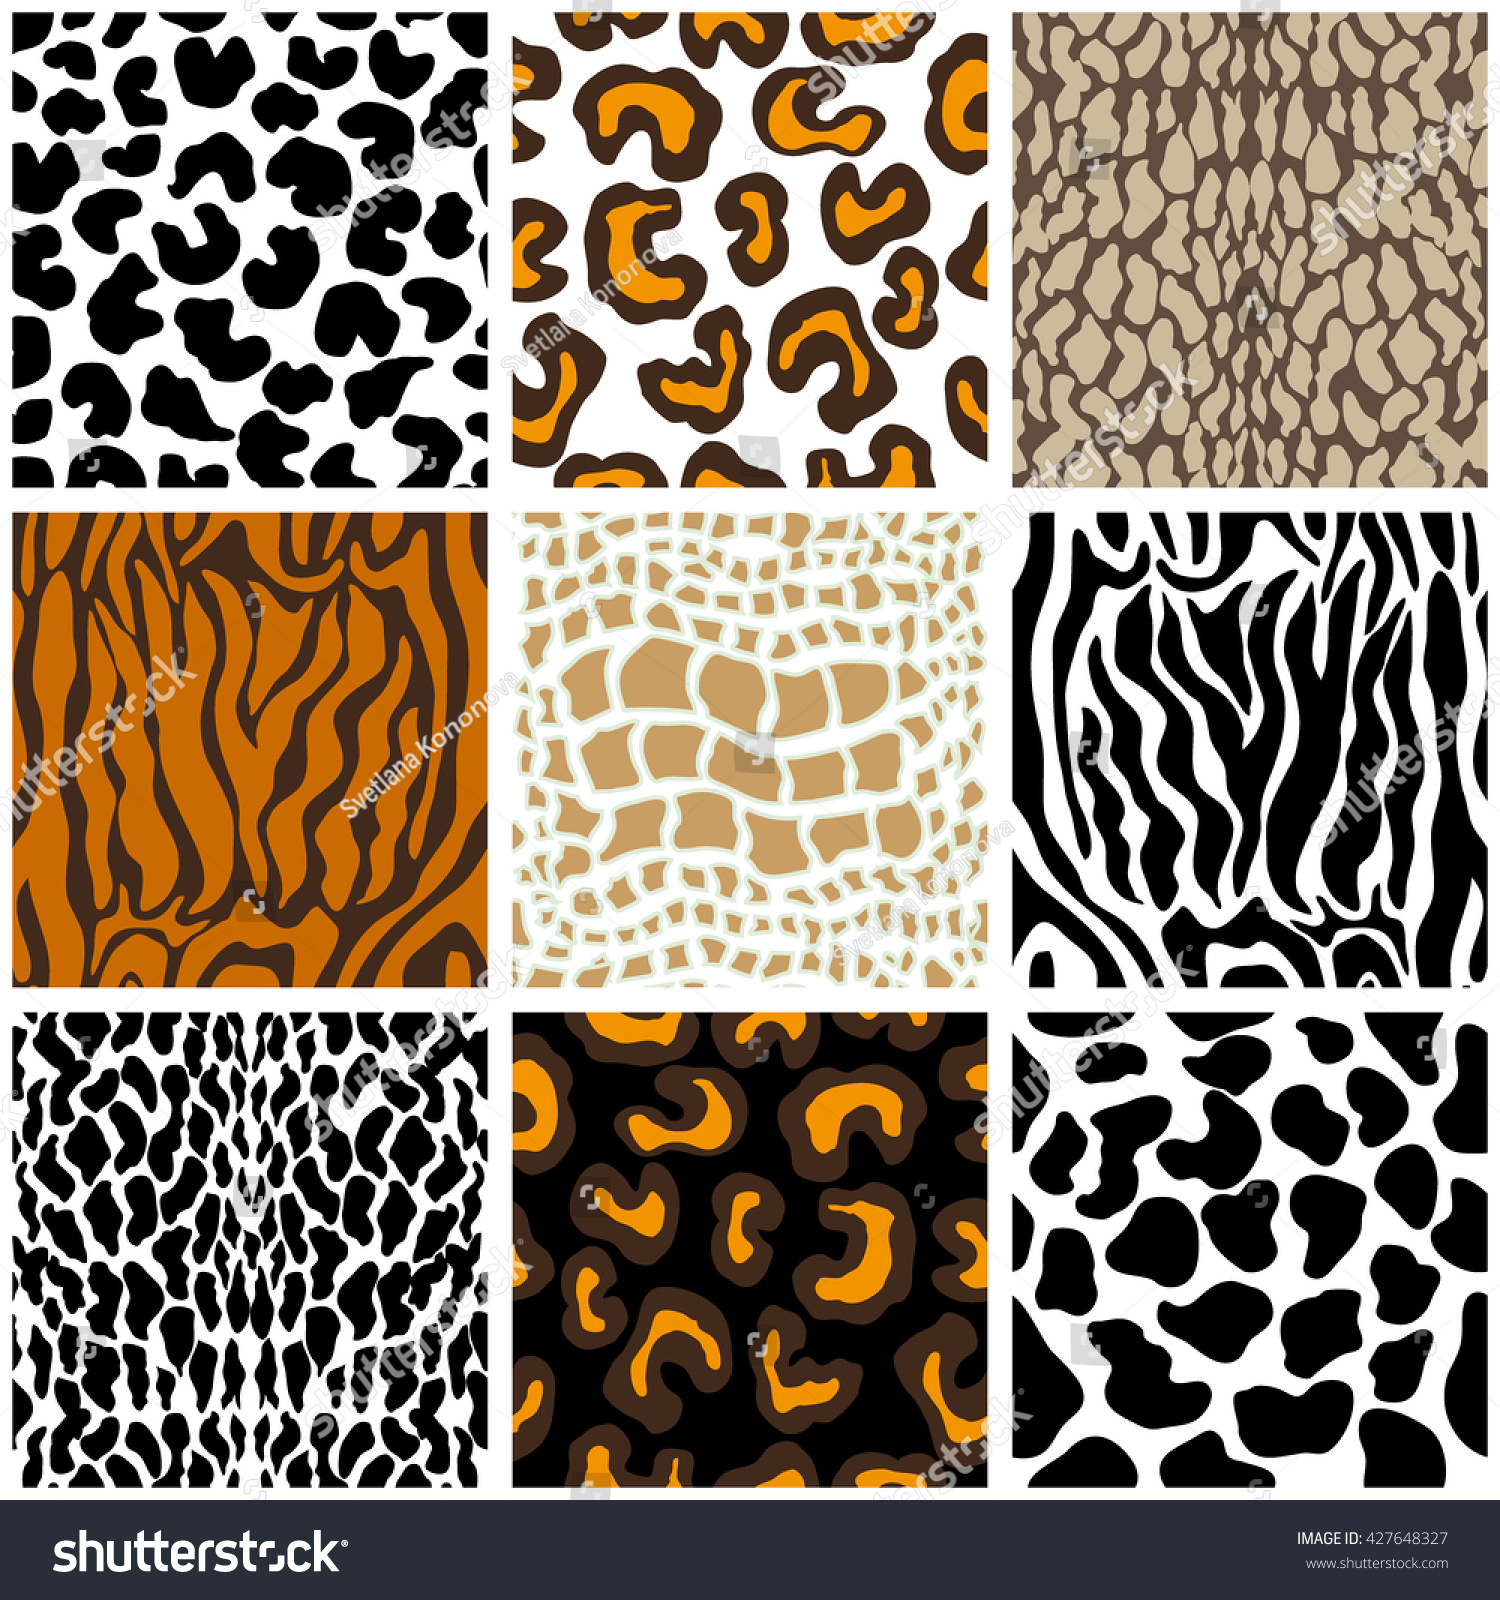 animal skin patterns seamless - photo #41